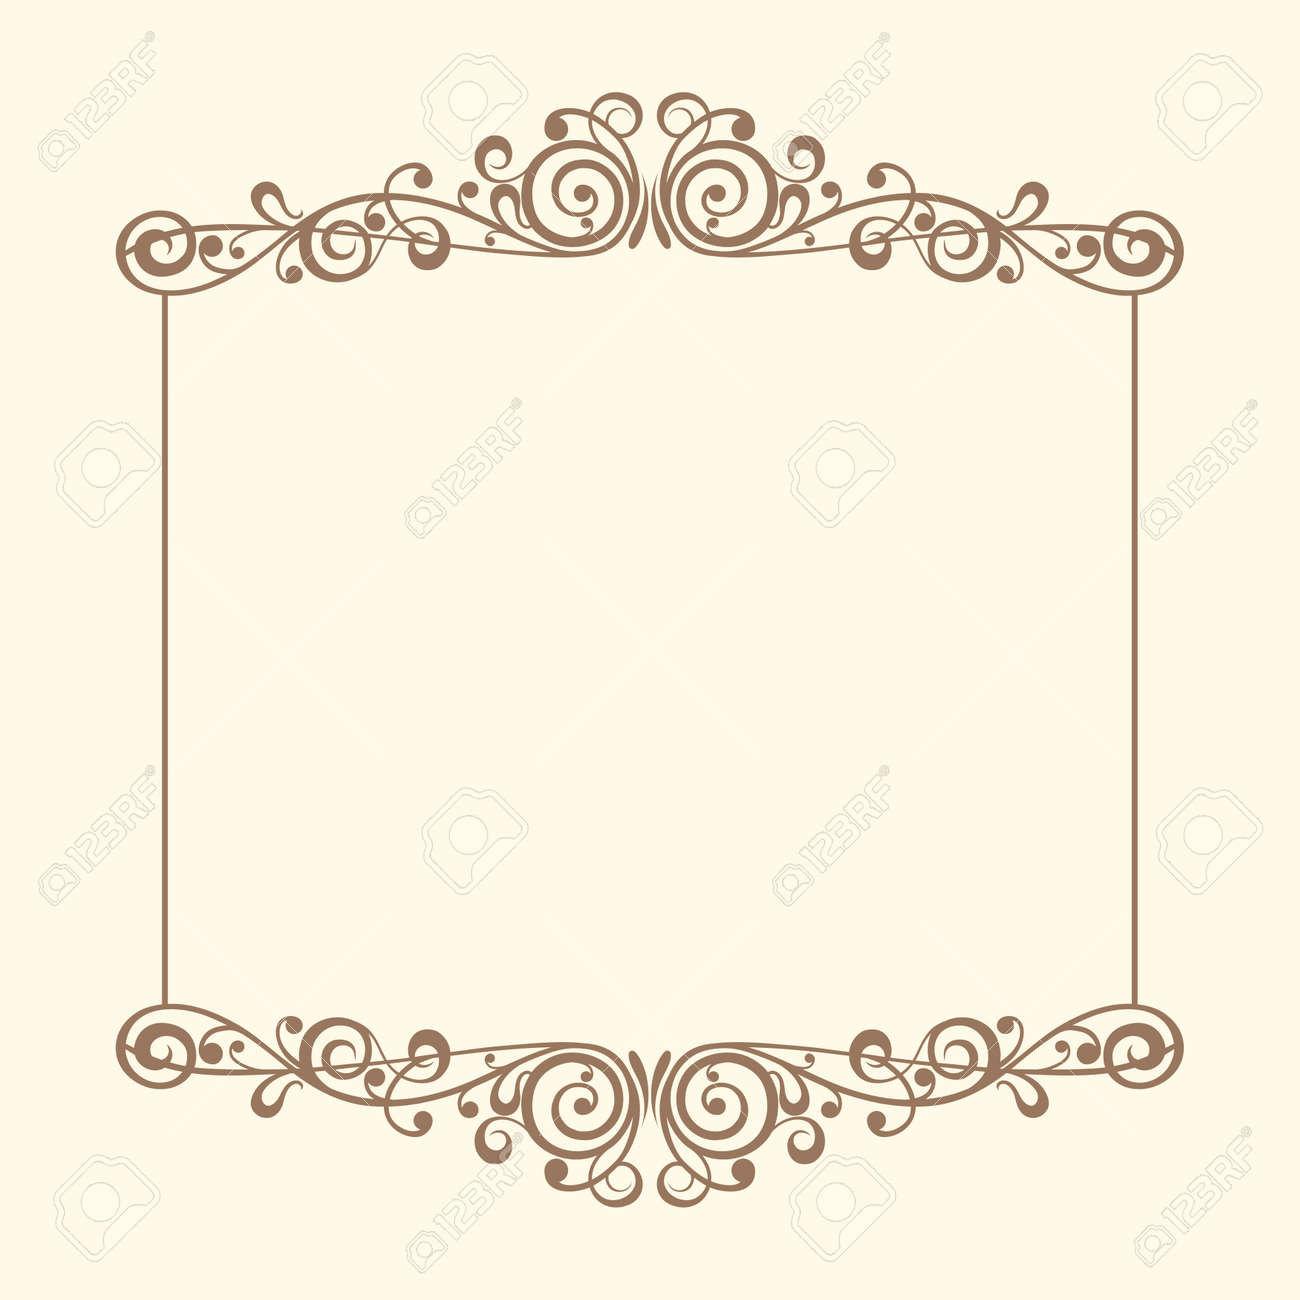 cover page design stock photos images royalty cover page cover page design vintage frames vector illustration